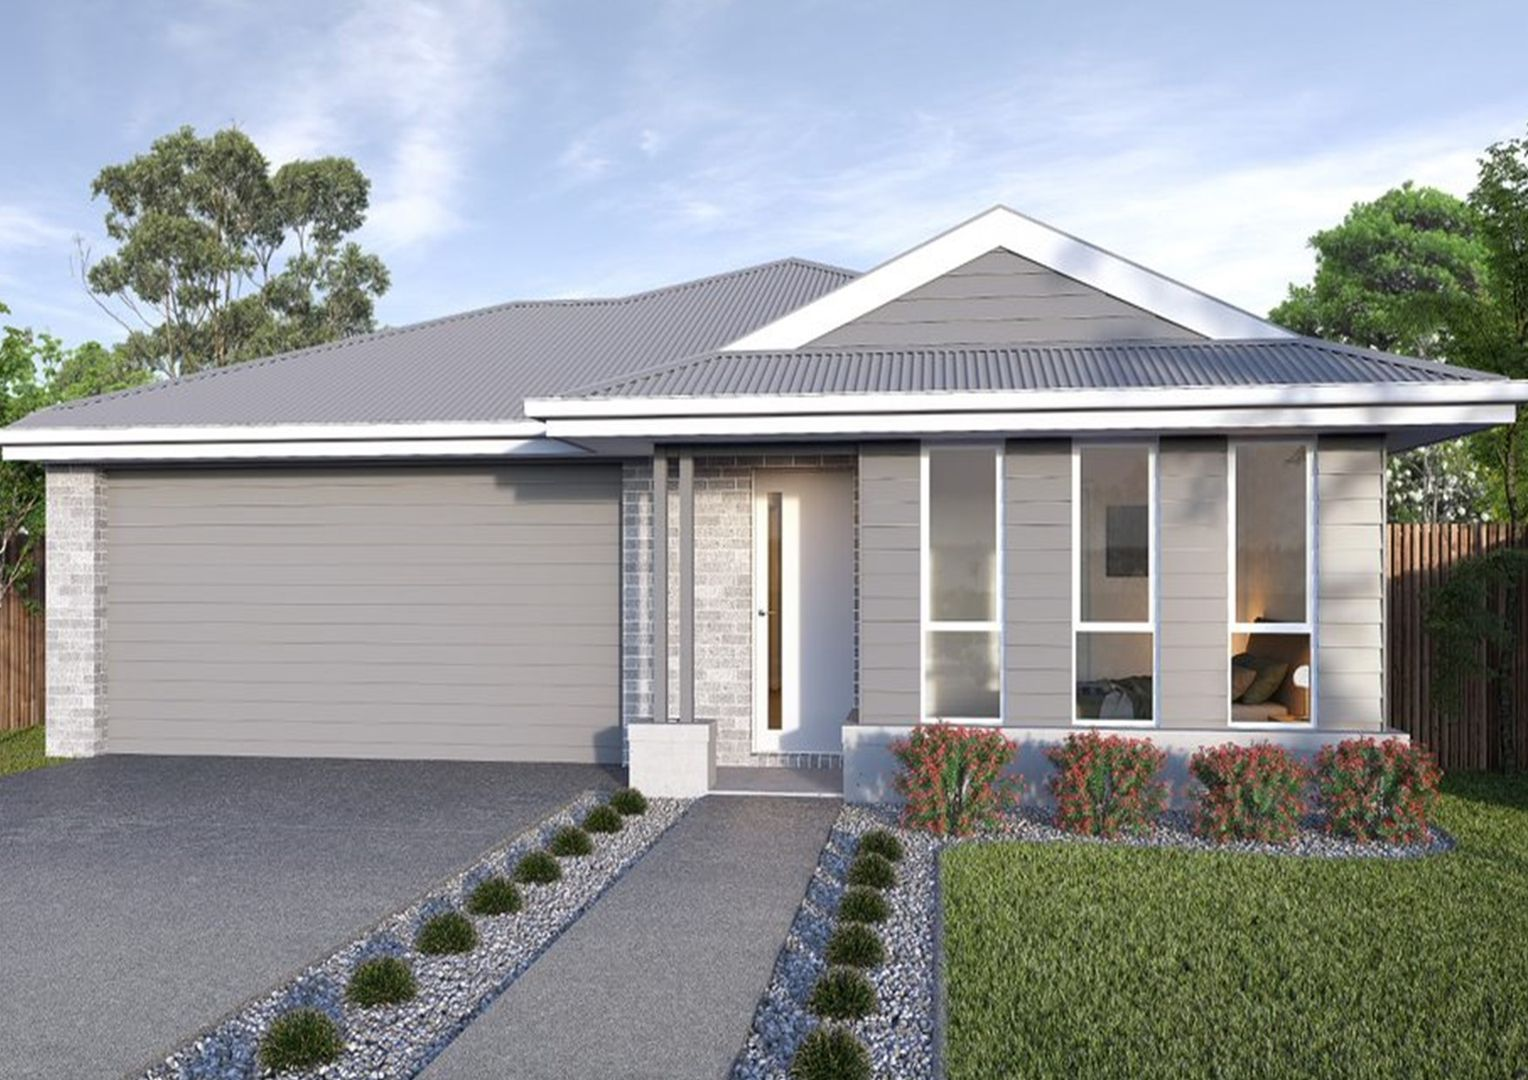 Lot 133 Balmoral Crescent, Southside QLD 4570, Image 1